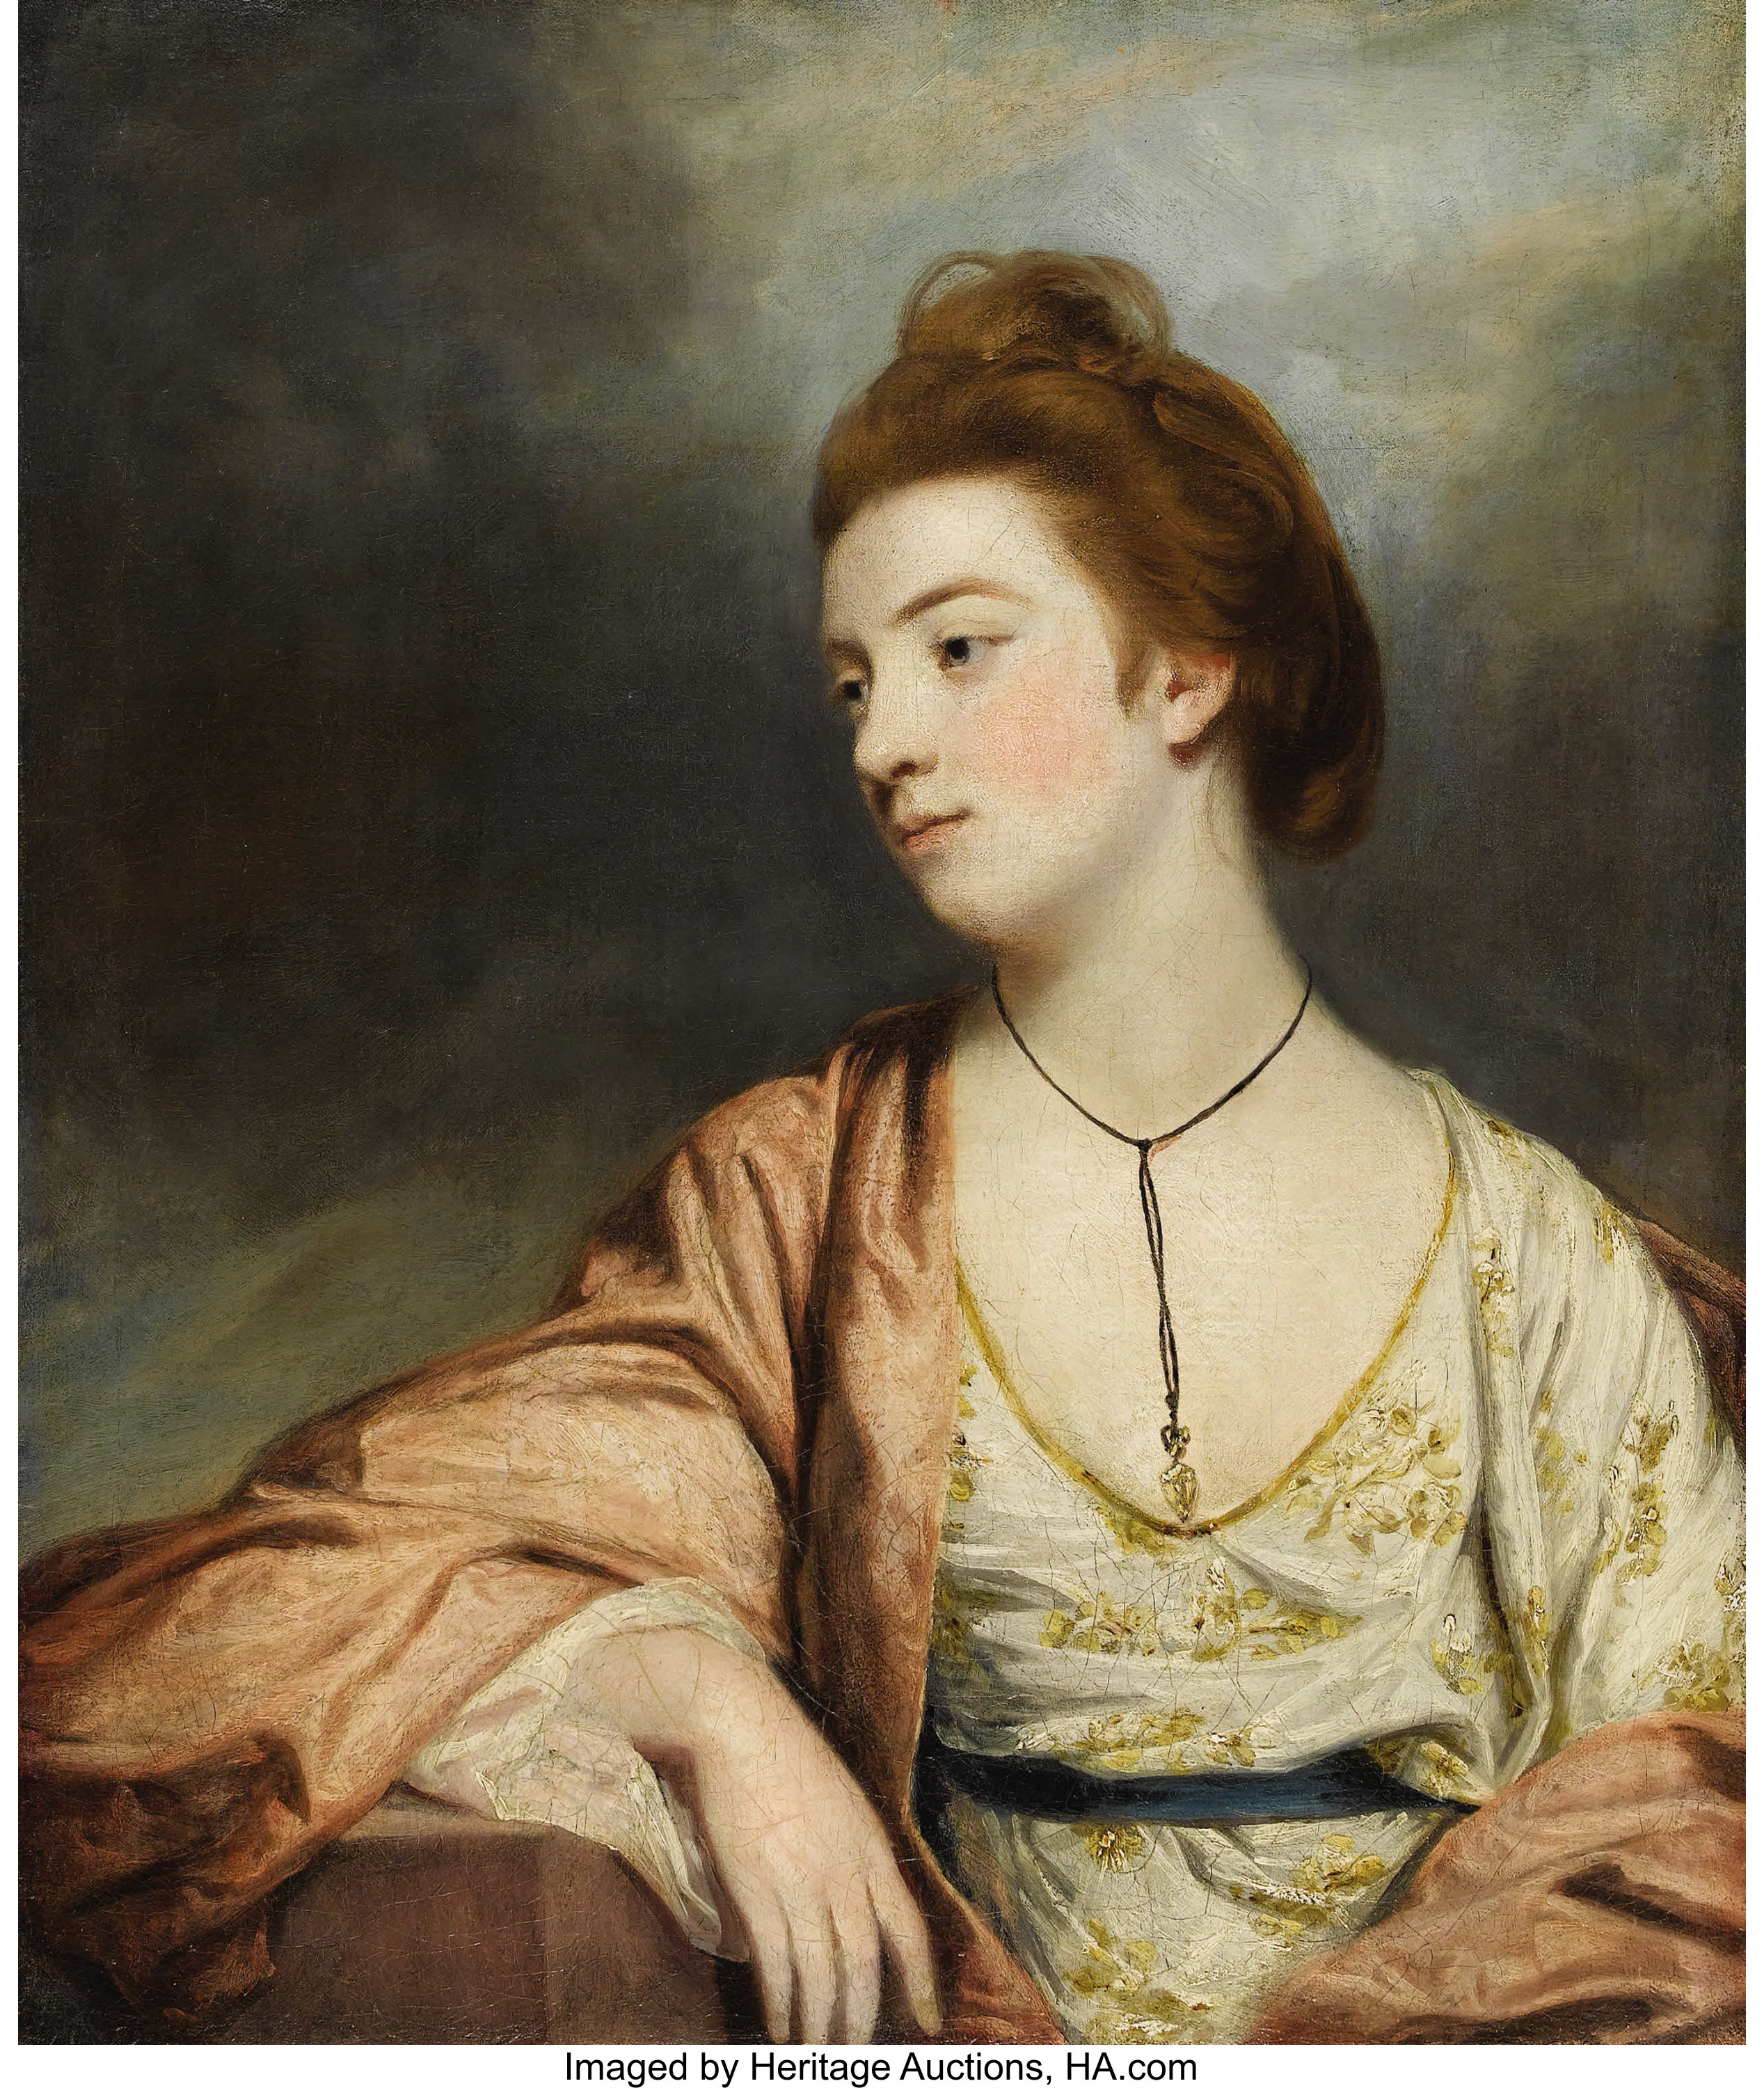 Sir Joshua Reynolds for Sale | Value Guide | Heritage Auctions